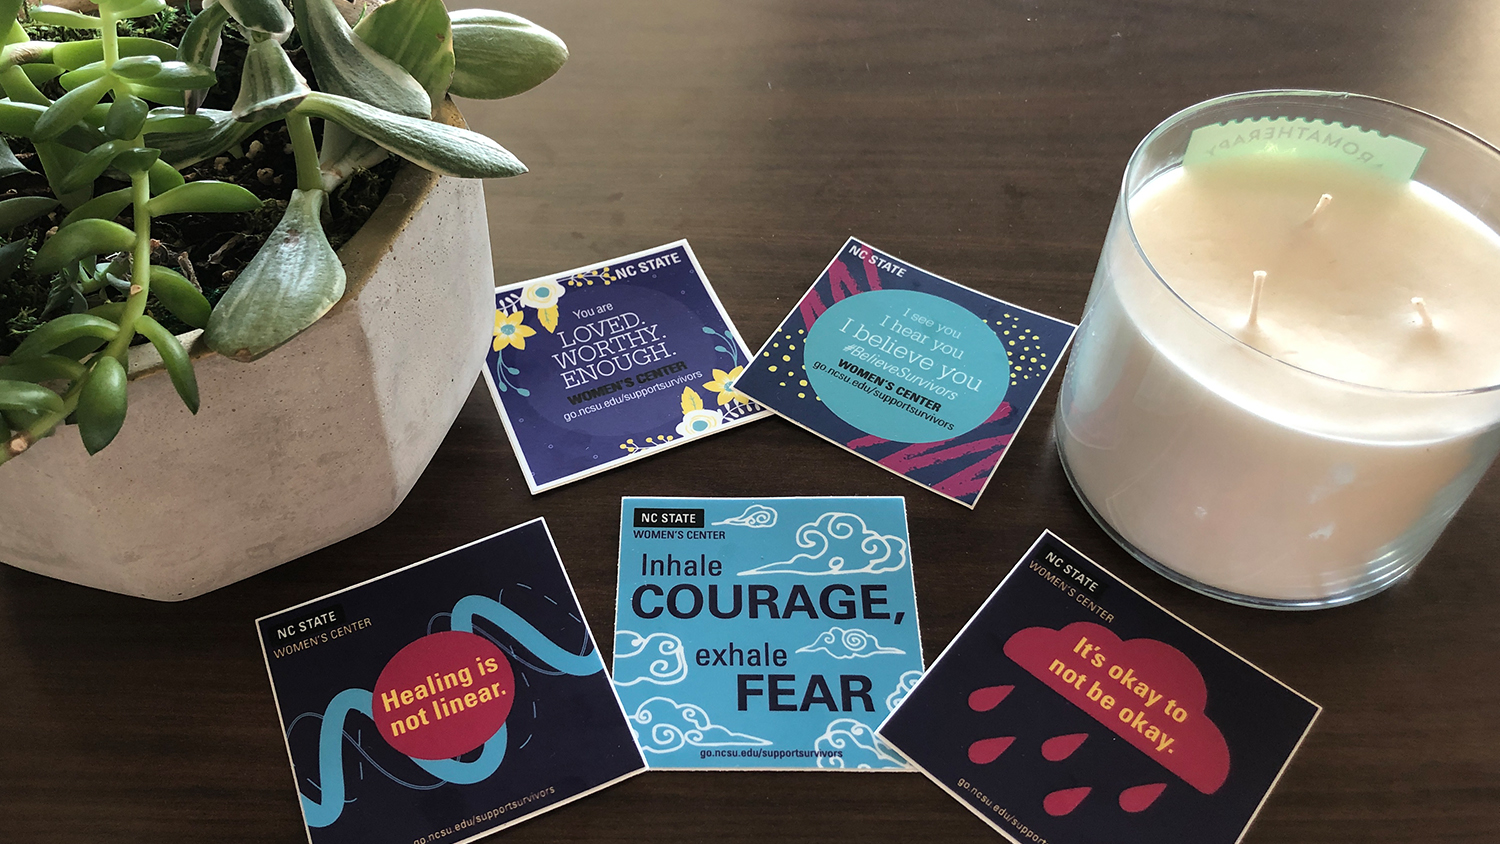 Display of empowering stickers from the Women's Center